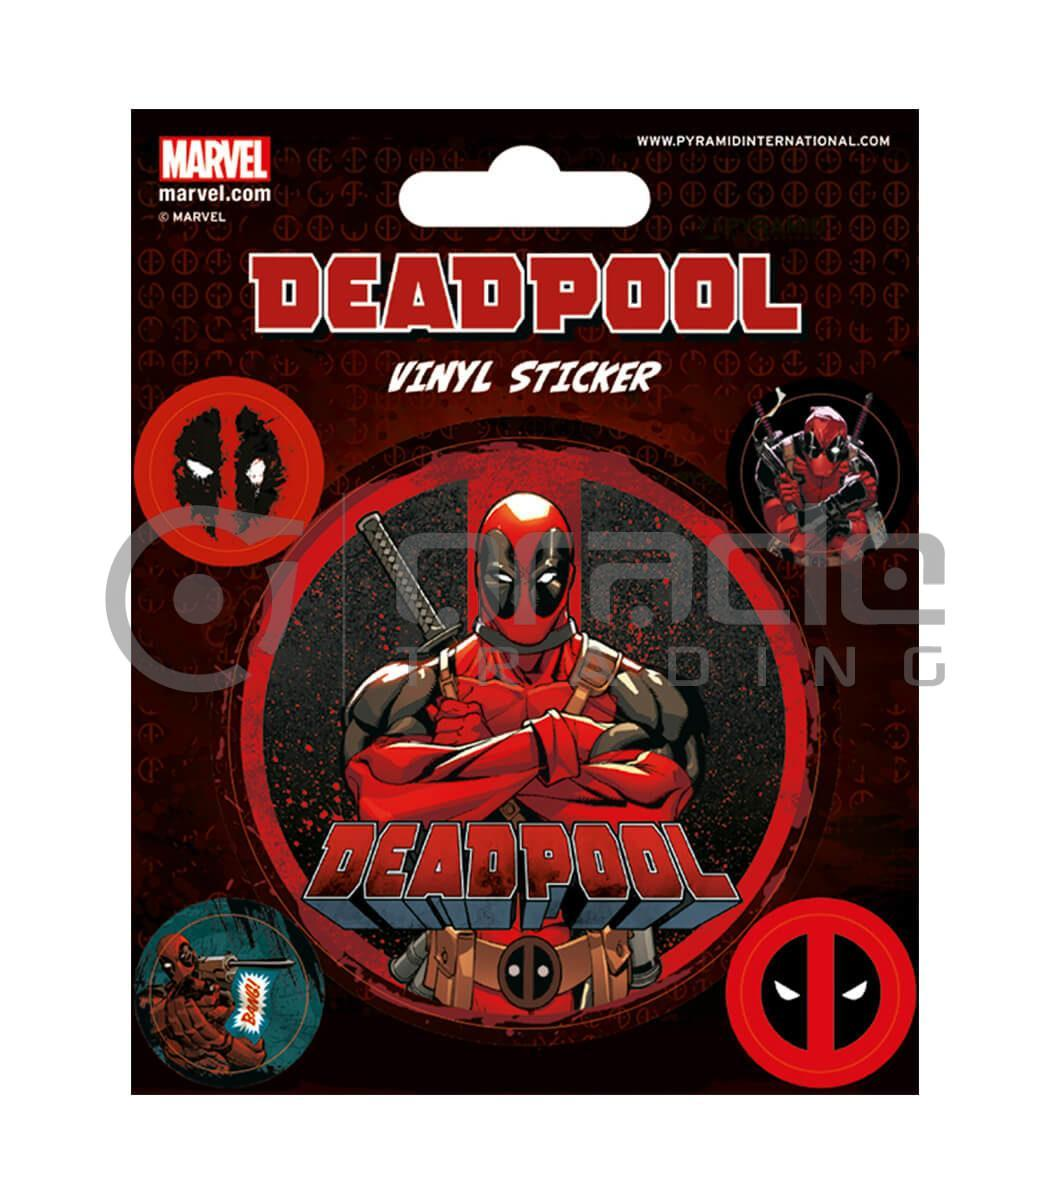 Deadpool Vinyl Sticker Pack